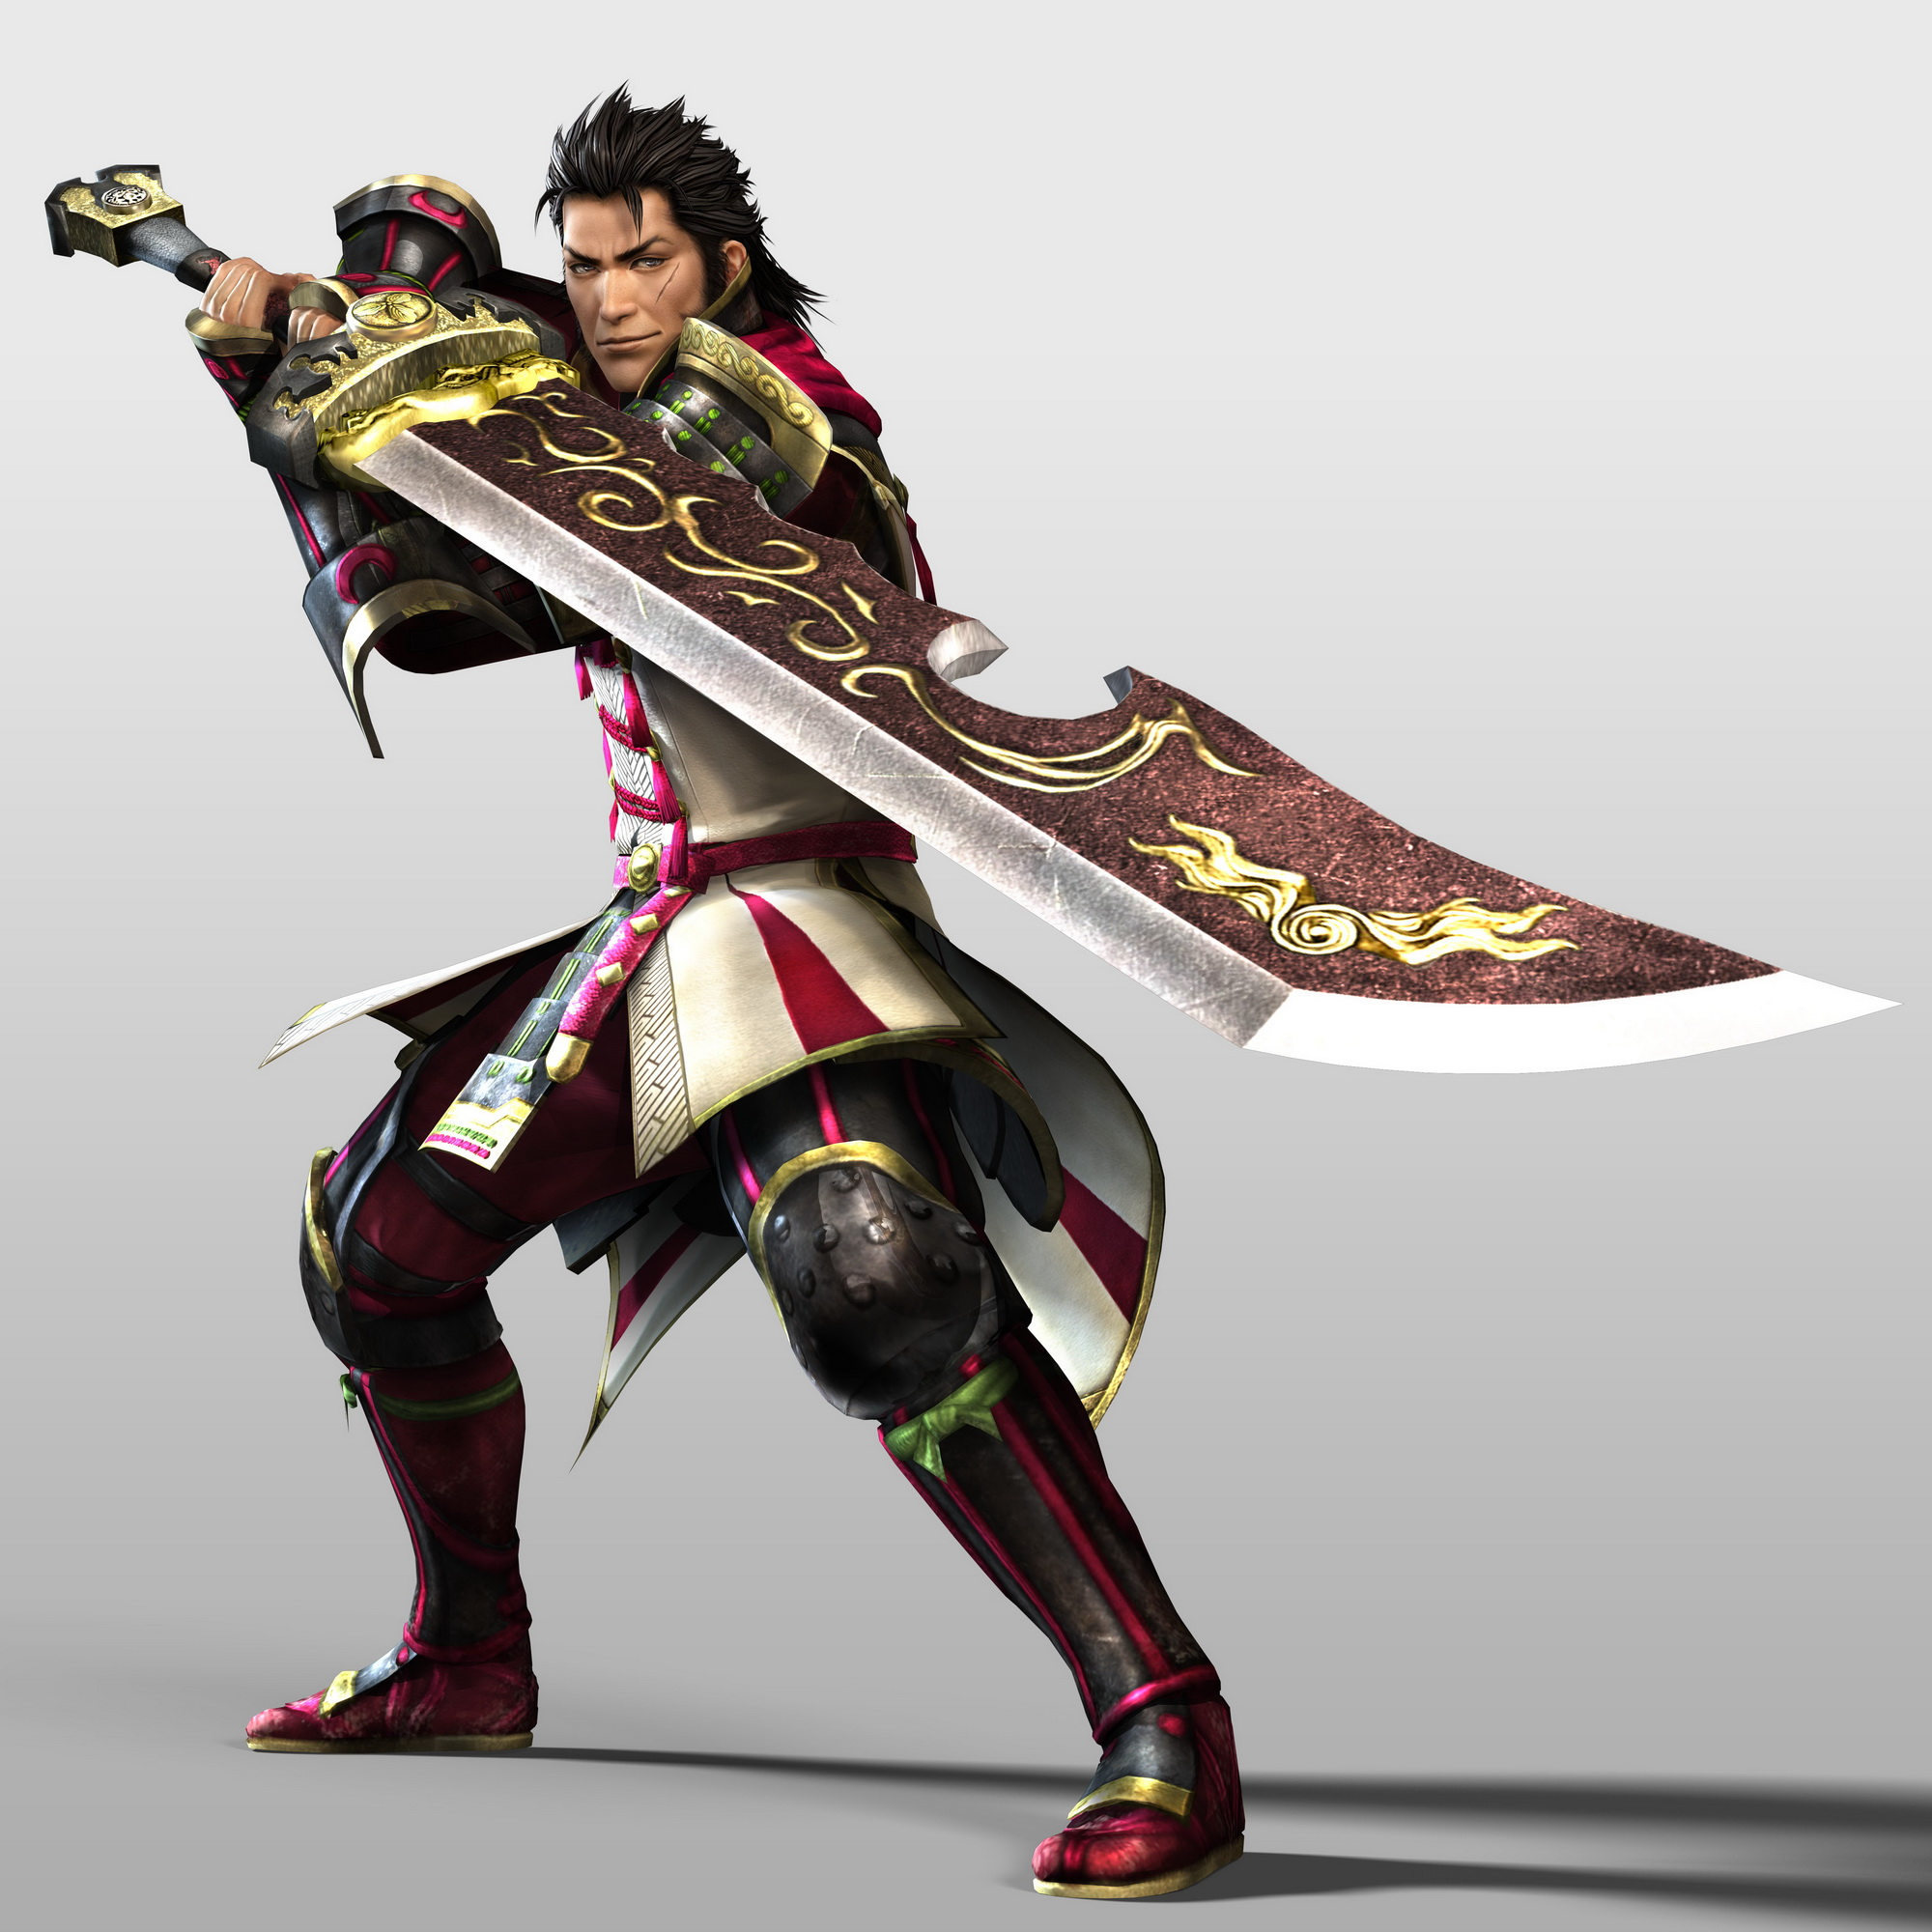 Warriors Orochi 3 Ultimate Rare Weapons: [Mystery] The Legendary Sage Of Six Paths 7